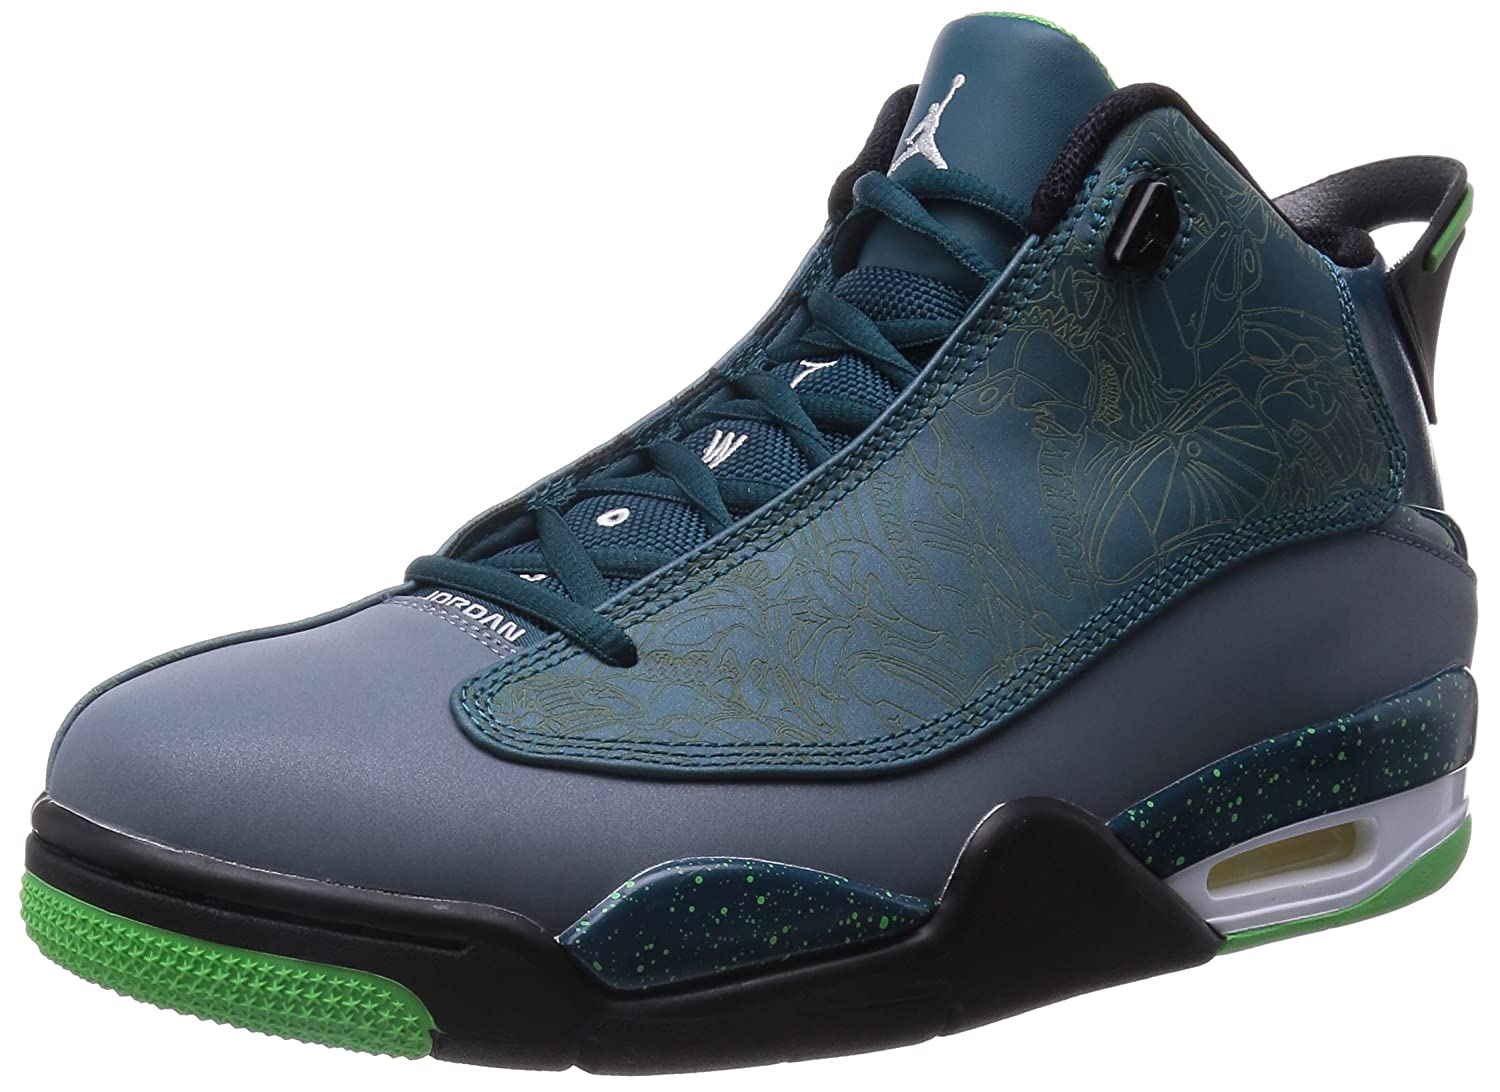 check out 13f8c 73972 well-wreapped Jordan Air Jordan Dub Zero Men Round Toe Synthetic Green  Basketball Shoe